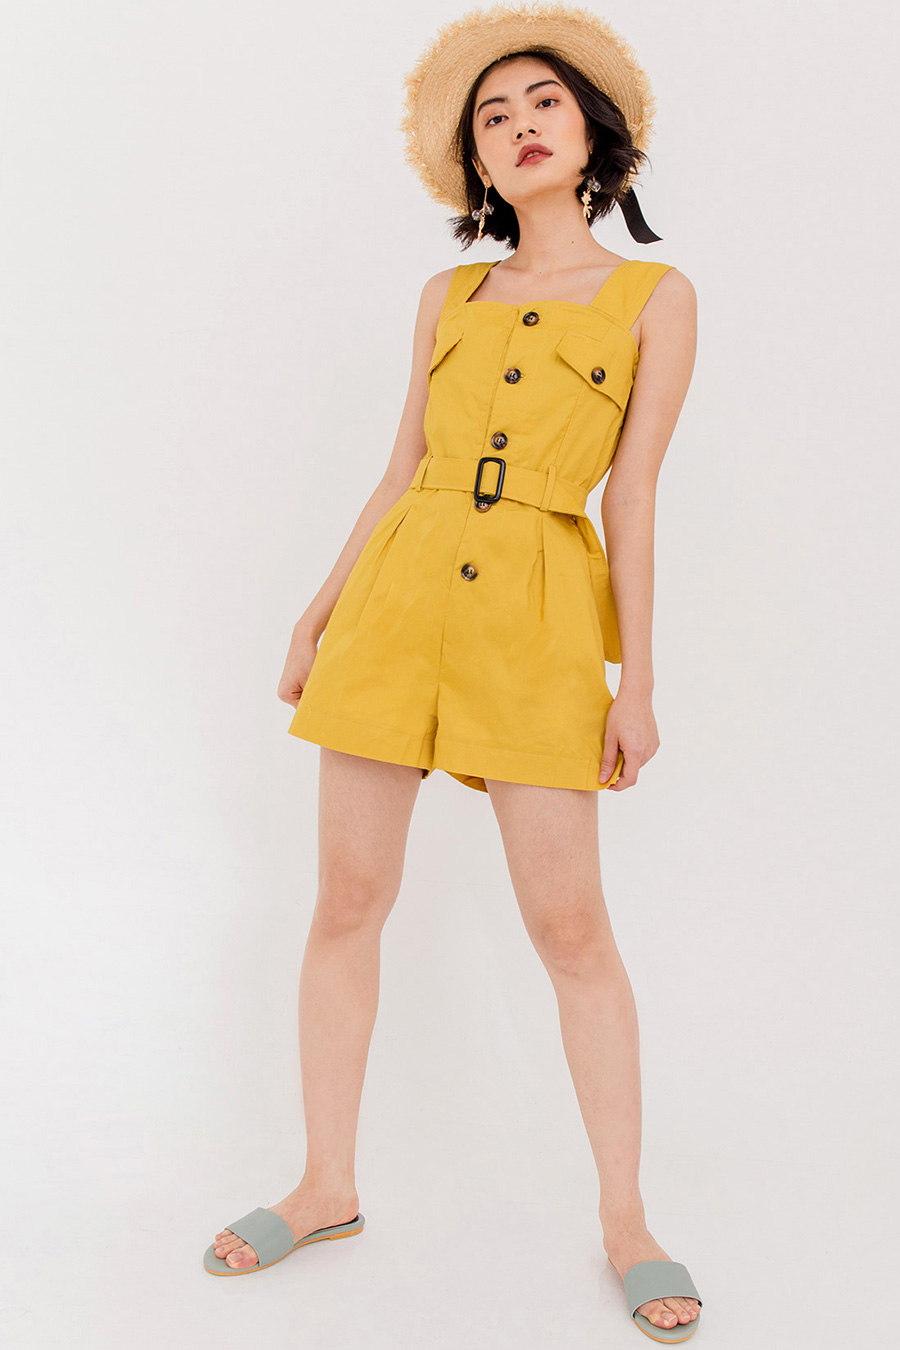 ELORA THICK STRAP PLAYSUIT - MARIGOLD